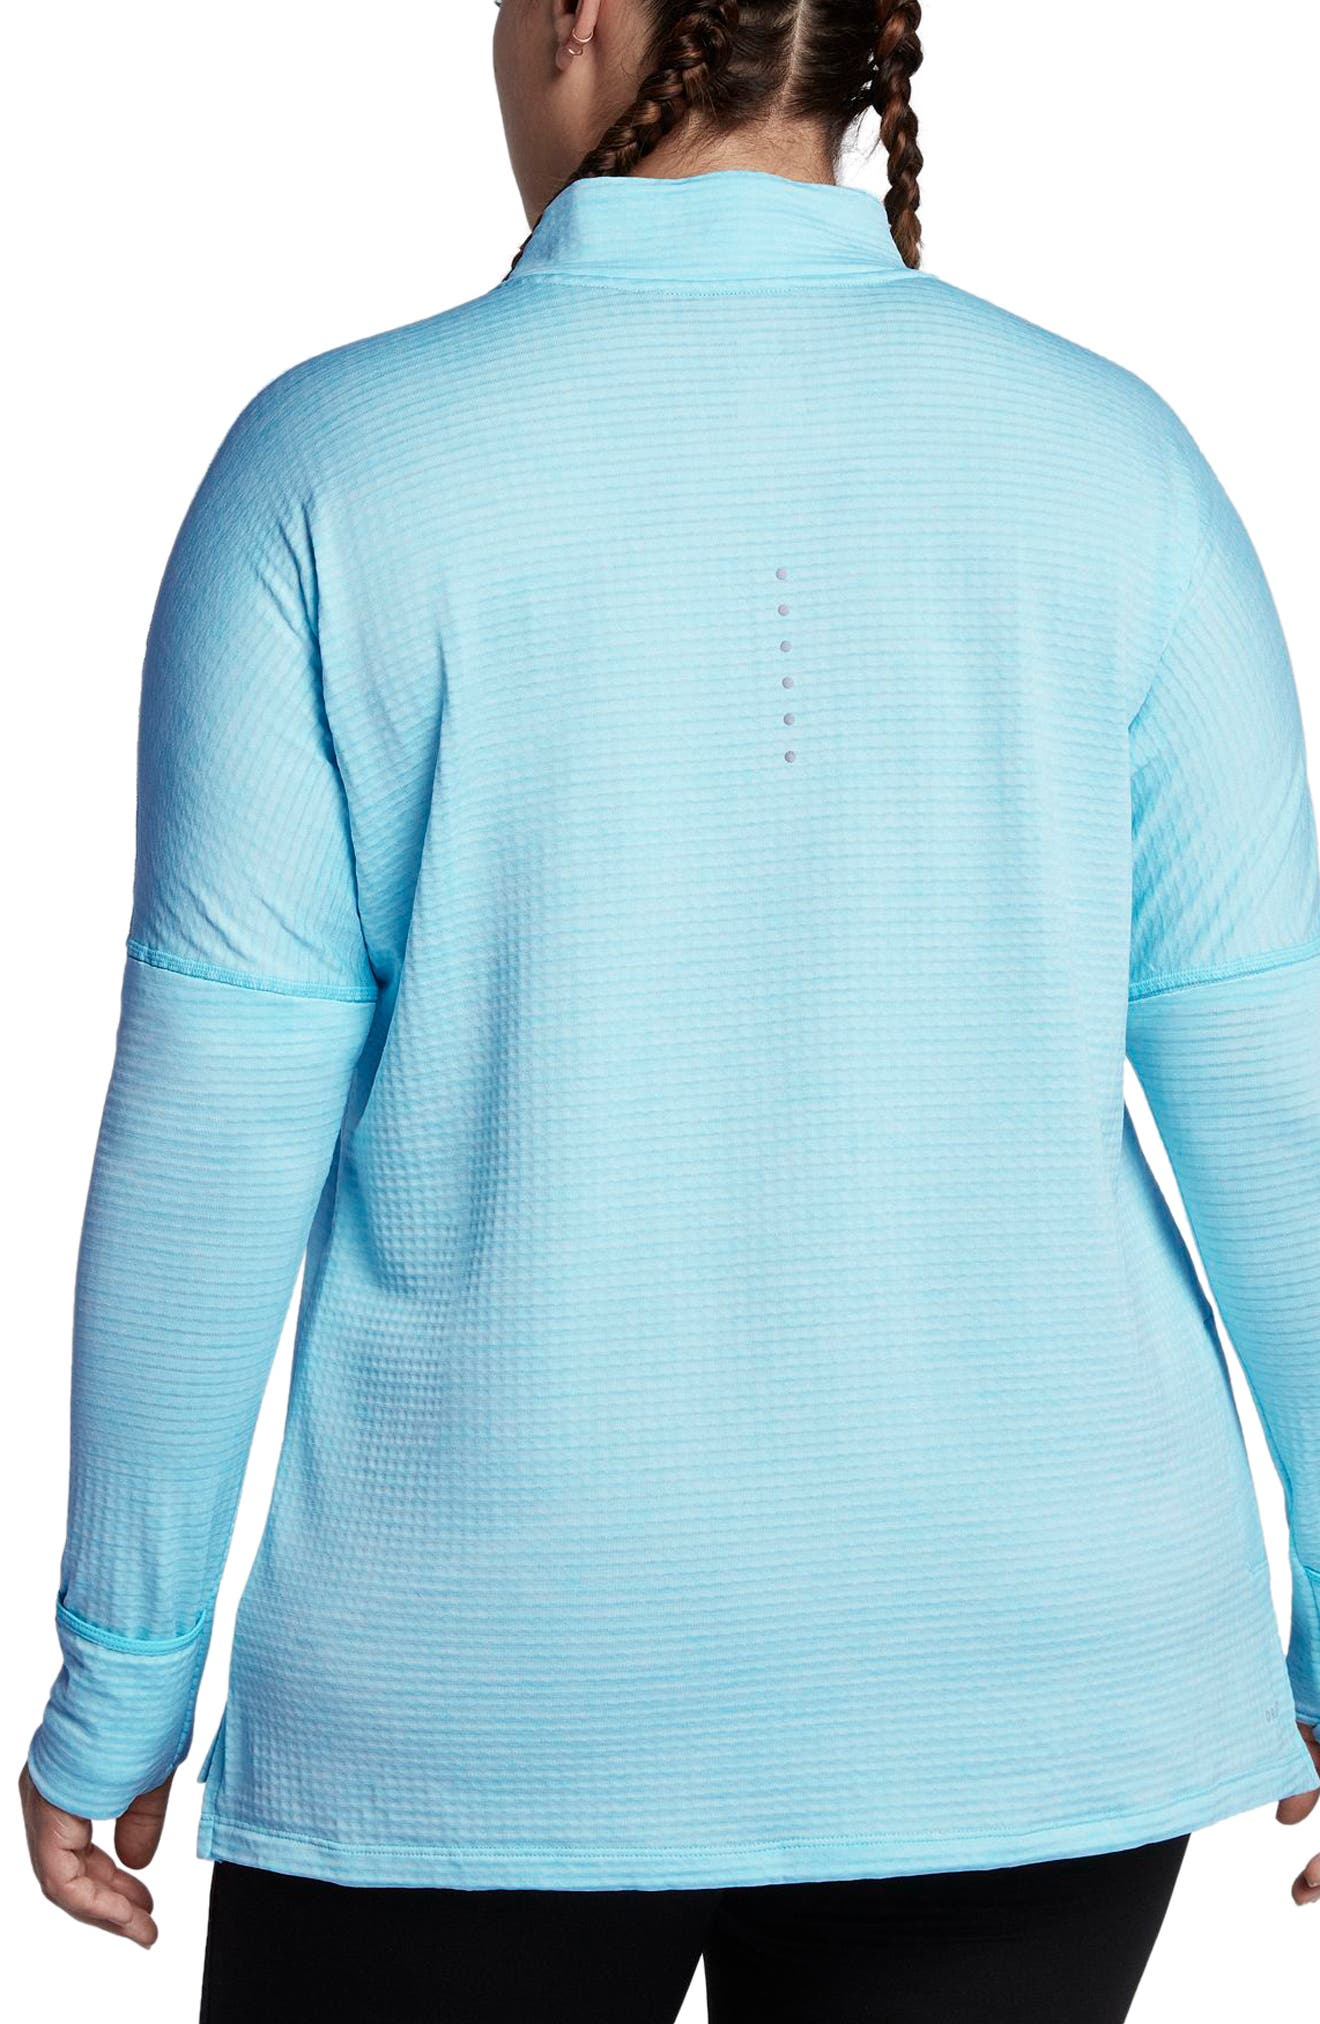 Sphere Element Long Sleeve Running Top,                             Alternate thumbnail 7, color,